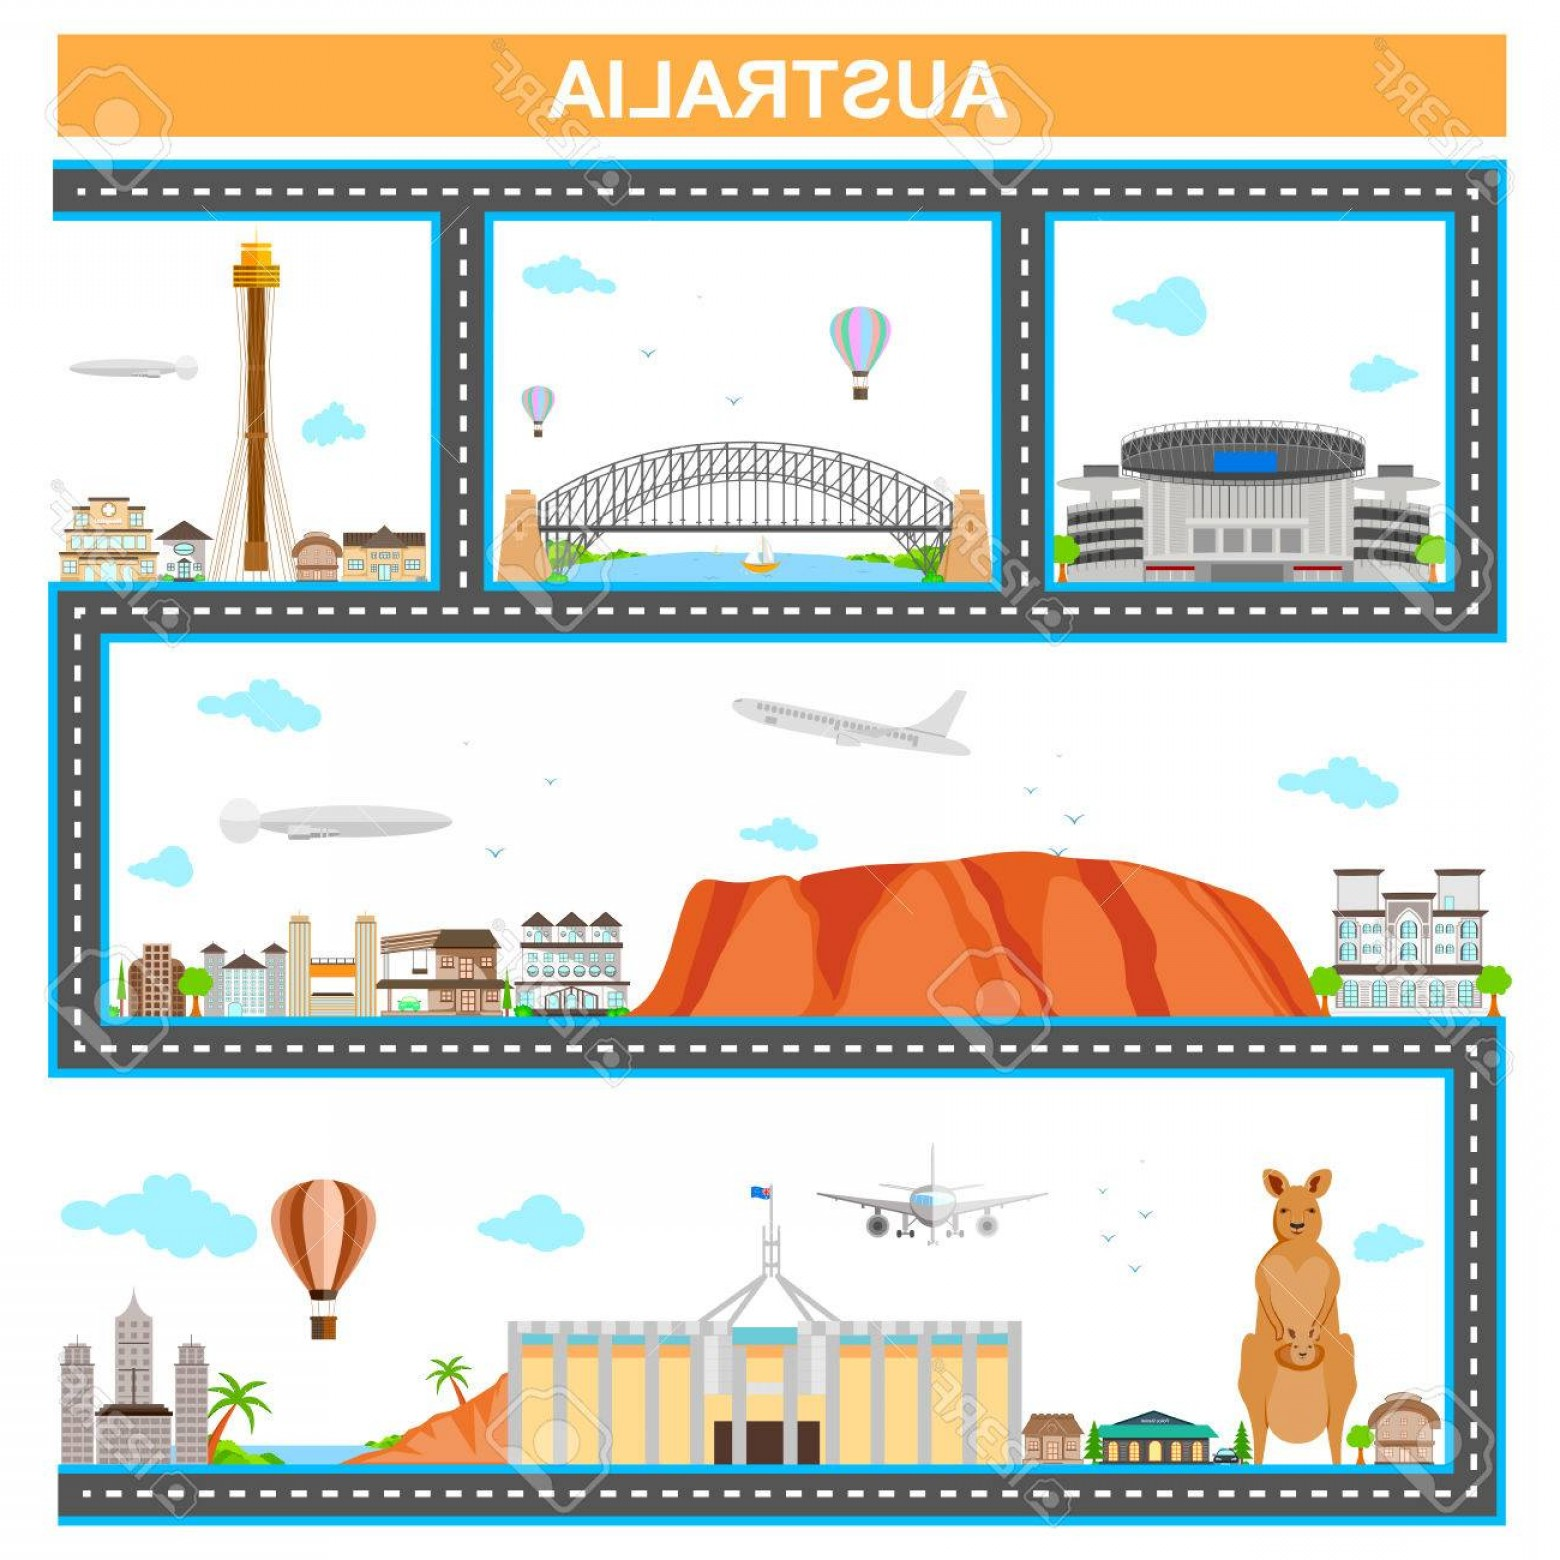 Famous Easy Vectors: Photostock Vector Easy To Edit Vector Illustration Of Cityscape With Famous Monument And Building Of Australia